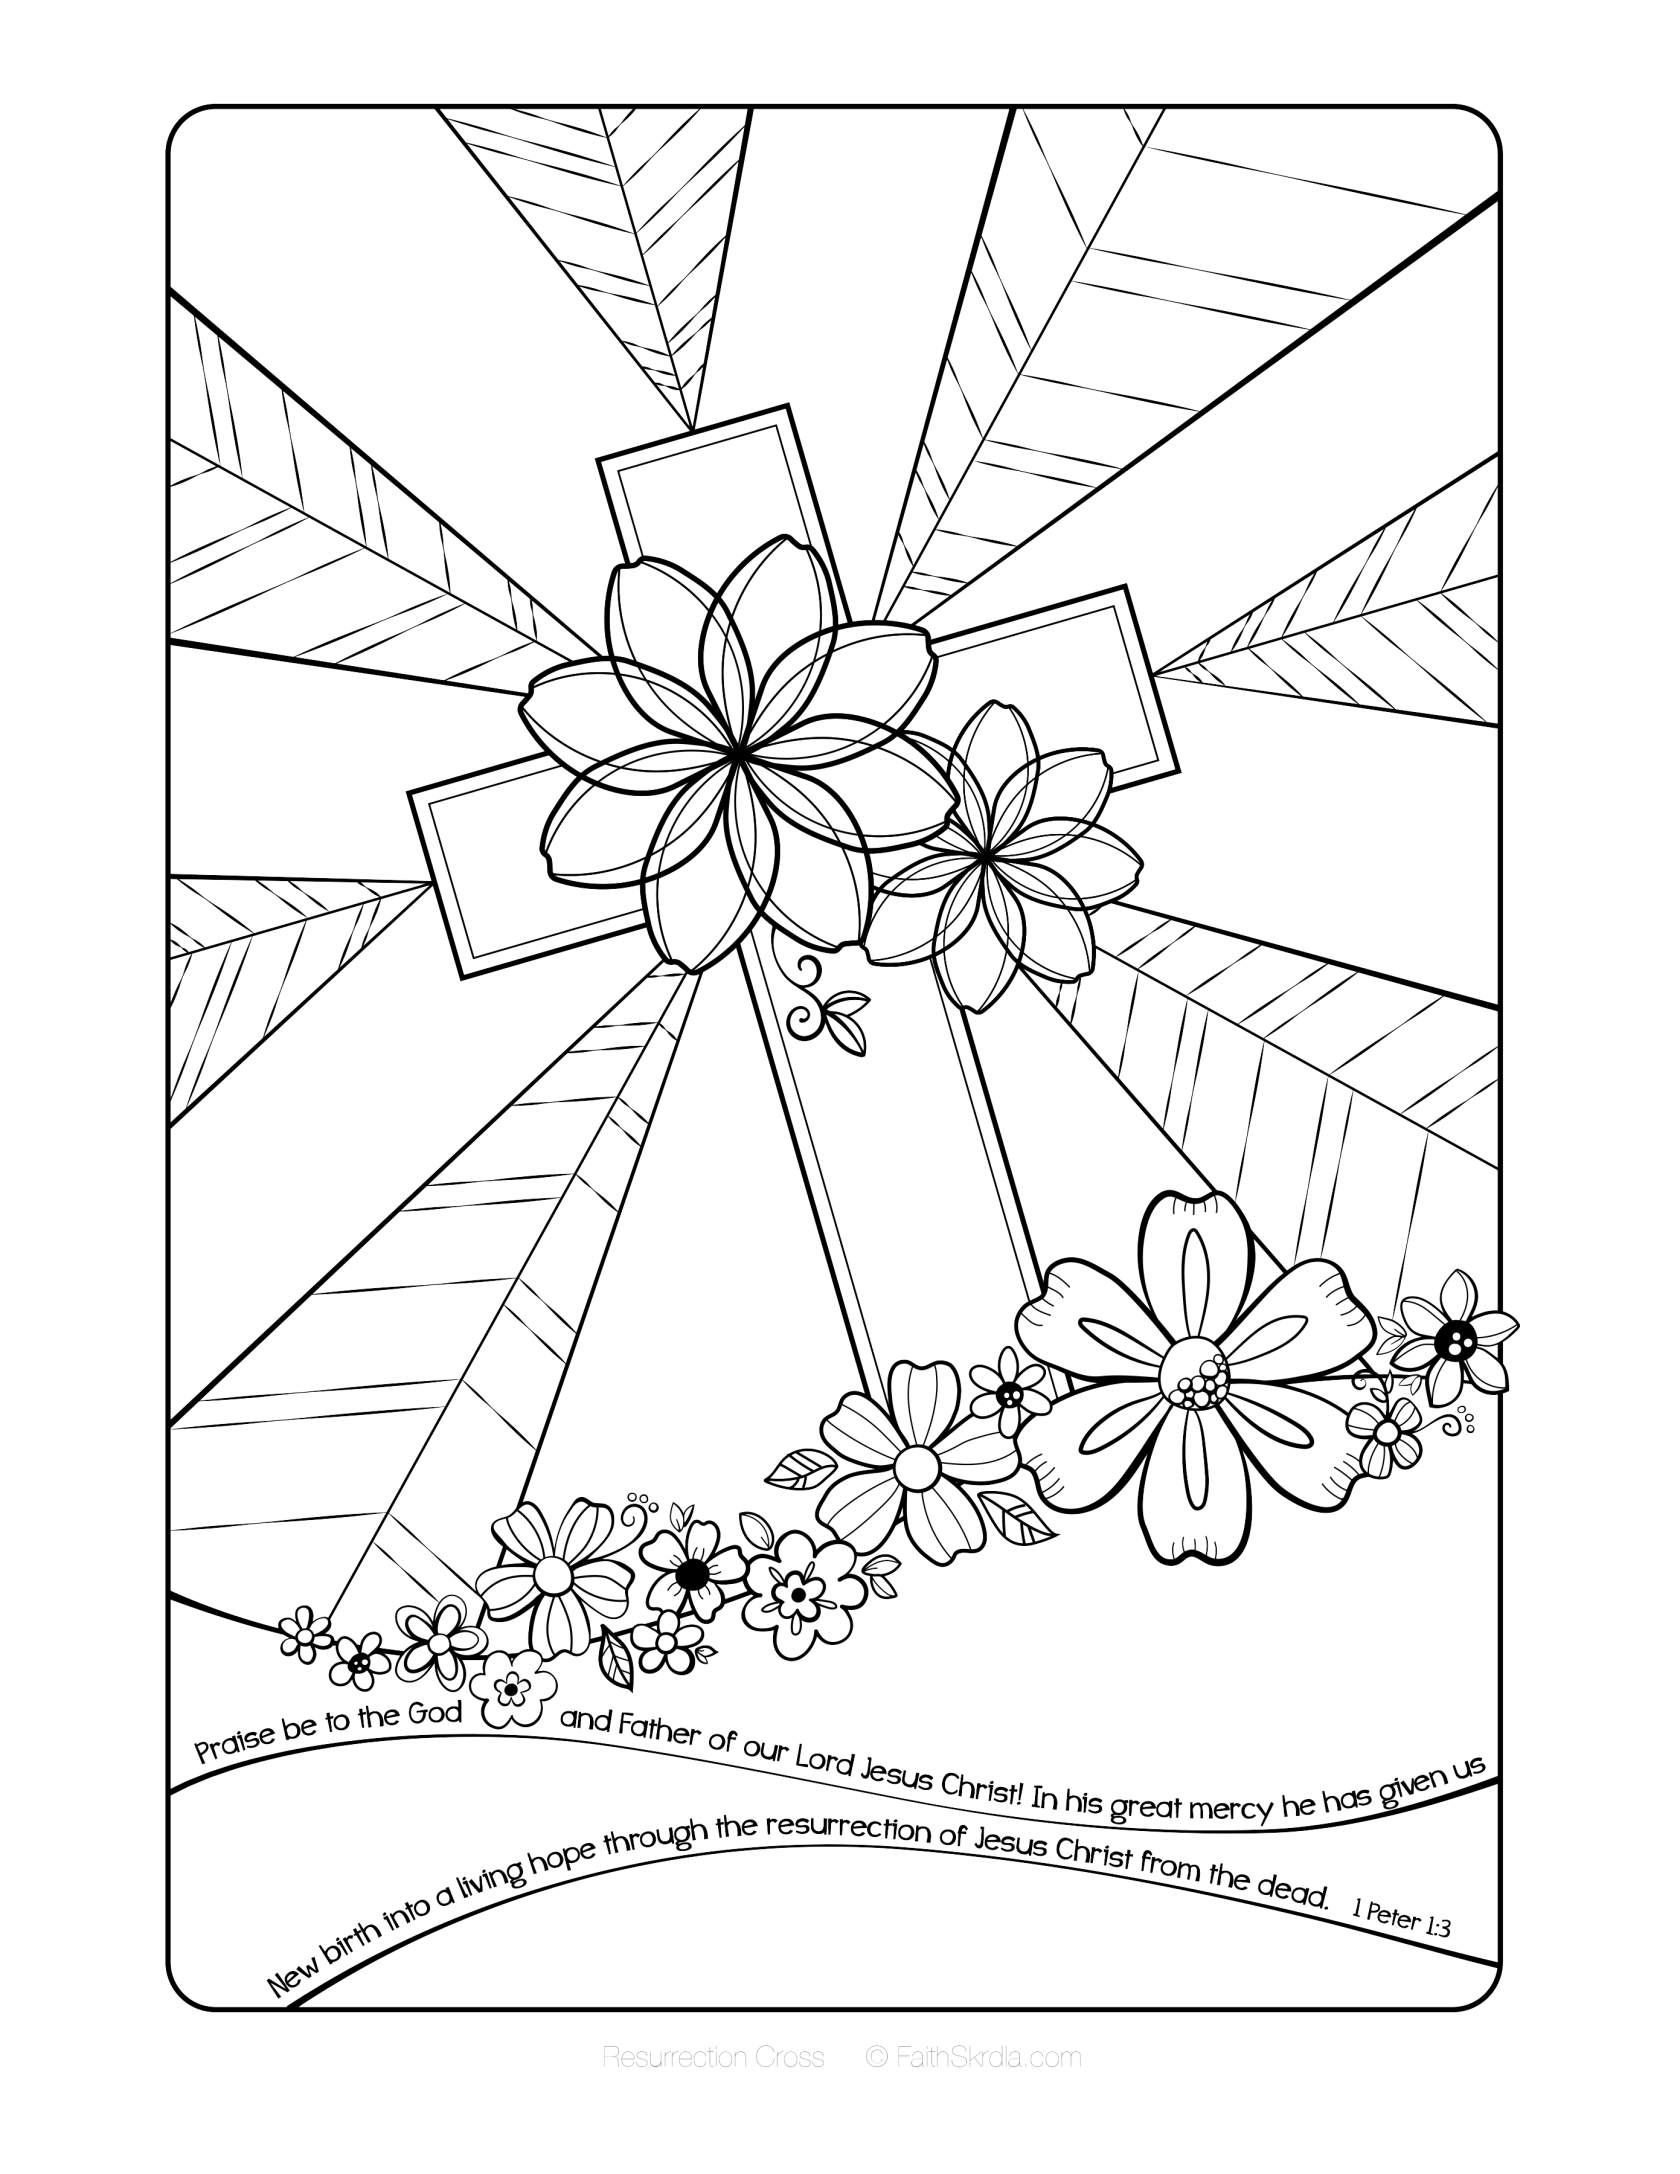 free christian coloring sheets 5 pages christmas coloring christian religious scripture sheets free coloring christian